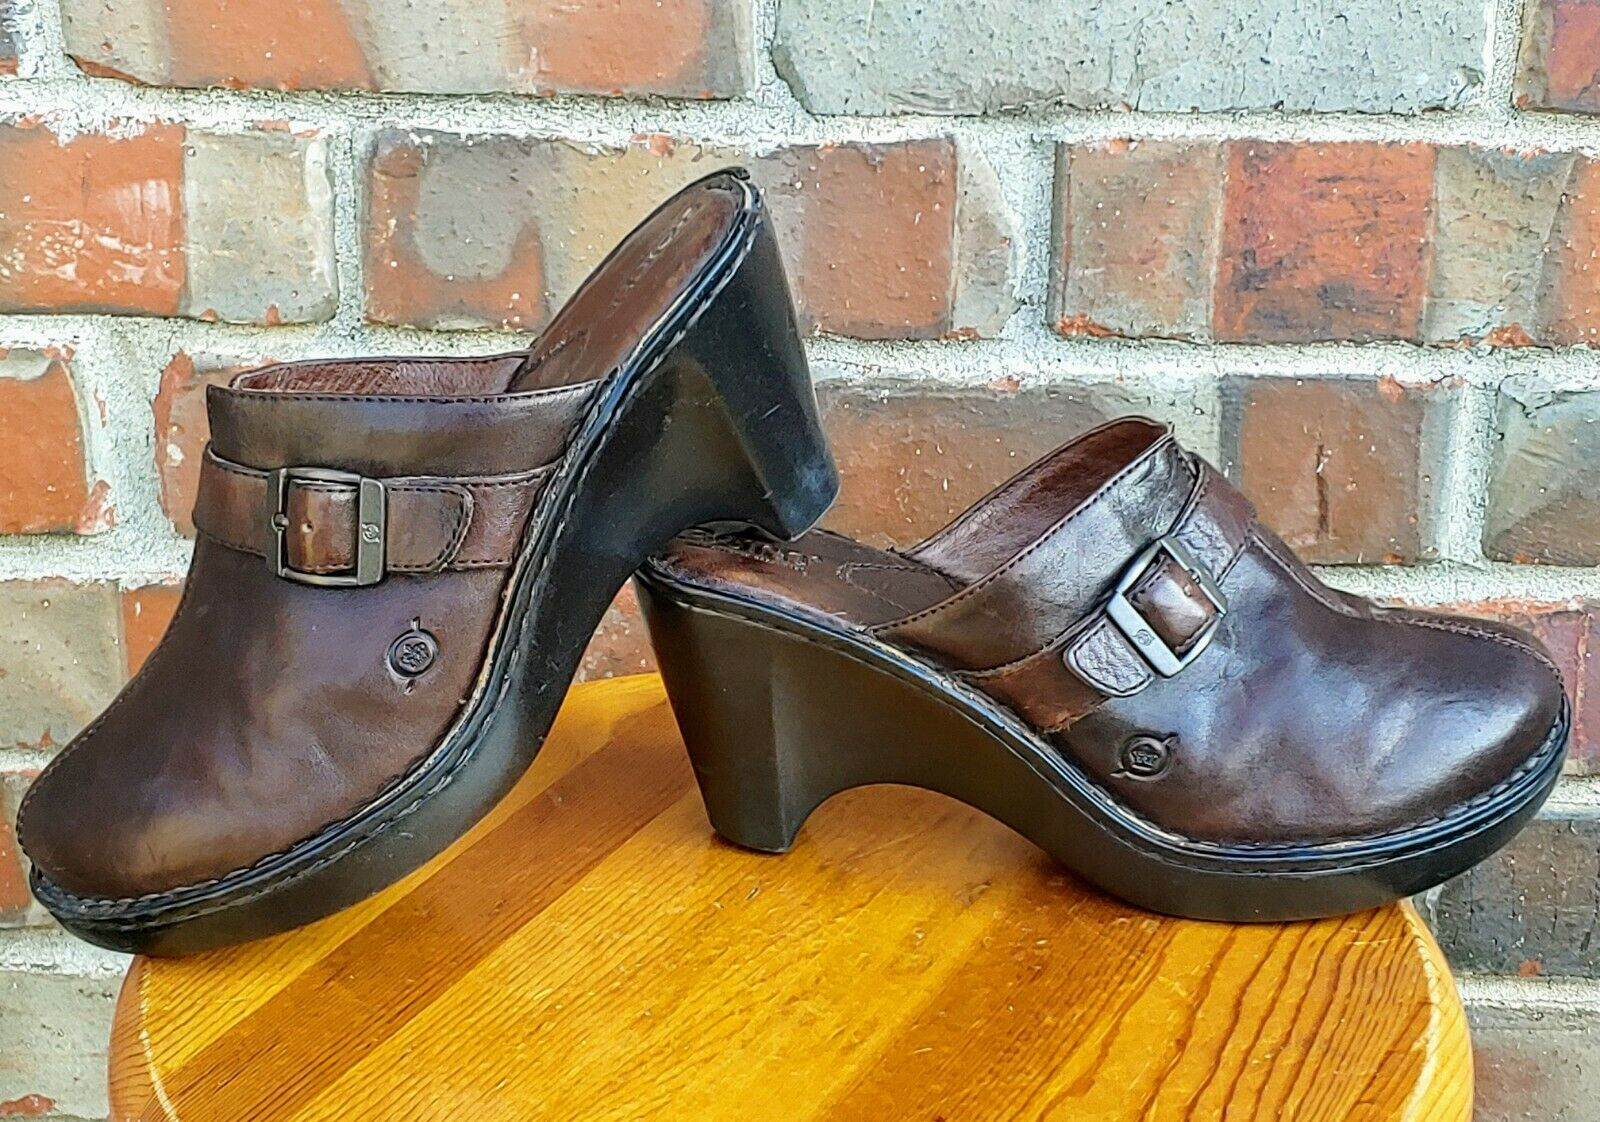 BORN Women's Brown Leather Hand Crafted Mule Slide Clogs W6226 - US 9M/EUR 40.5